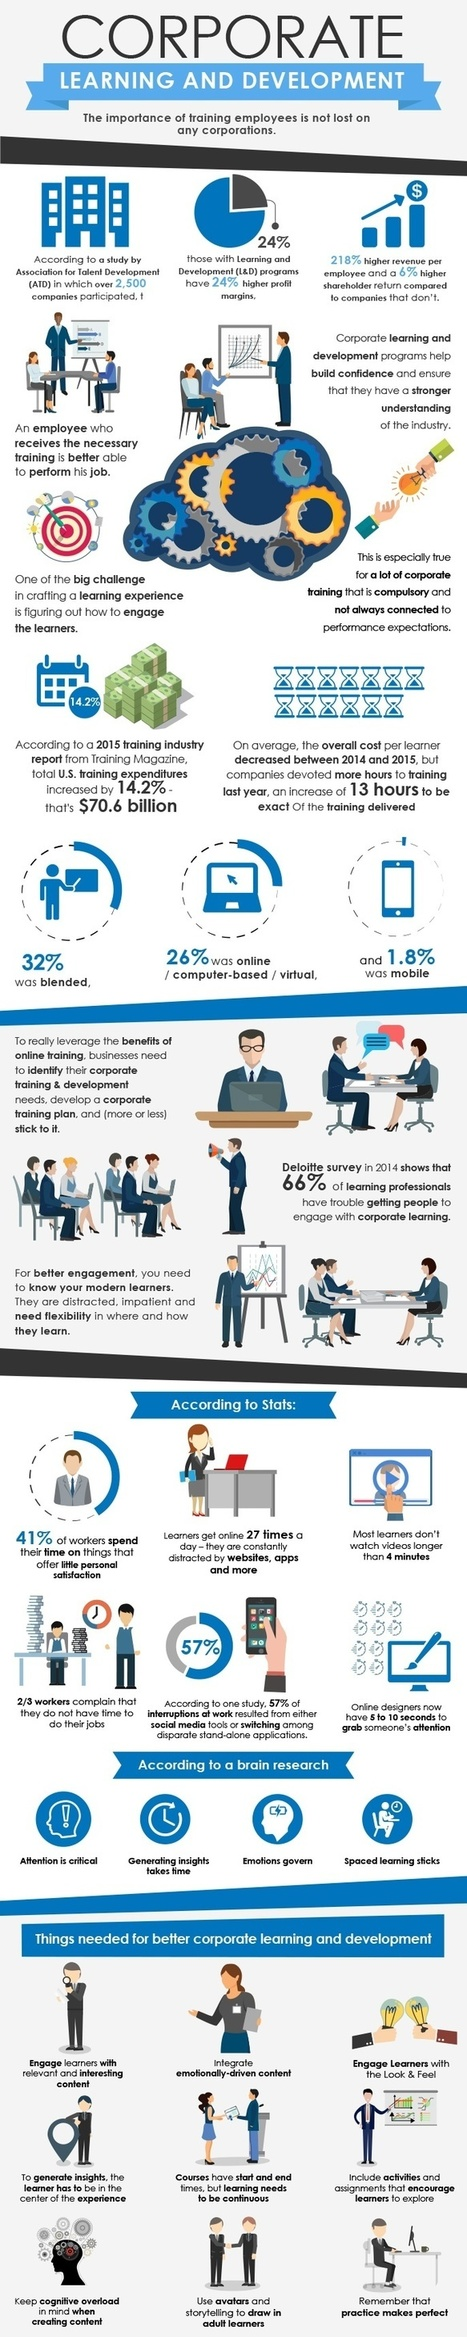 Corporate Learning and Development Infographic - e-Learning Infographics | Technologies pour la formation | Scoop.it